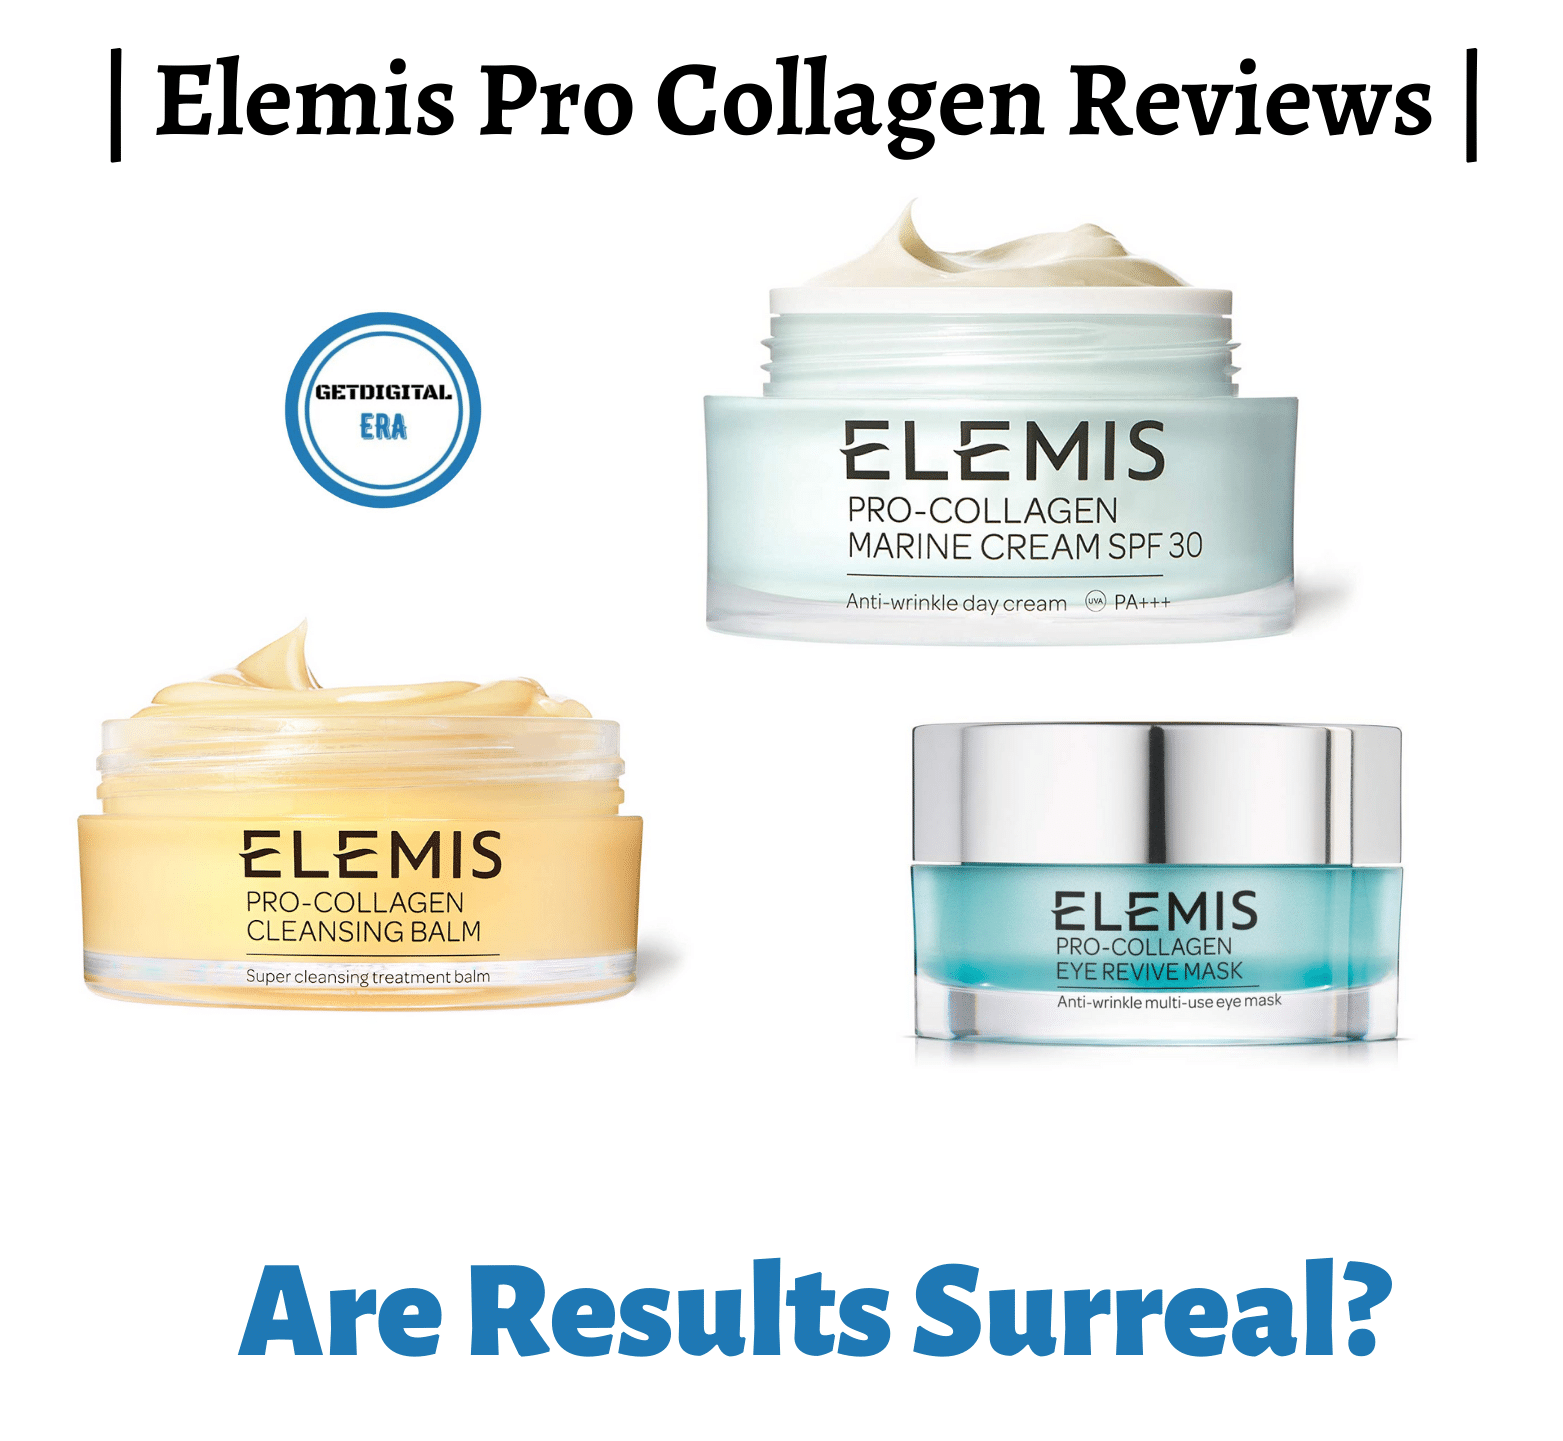 Elemis Pro Collagen Reviews